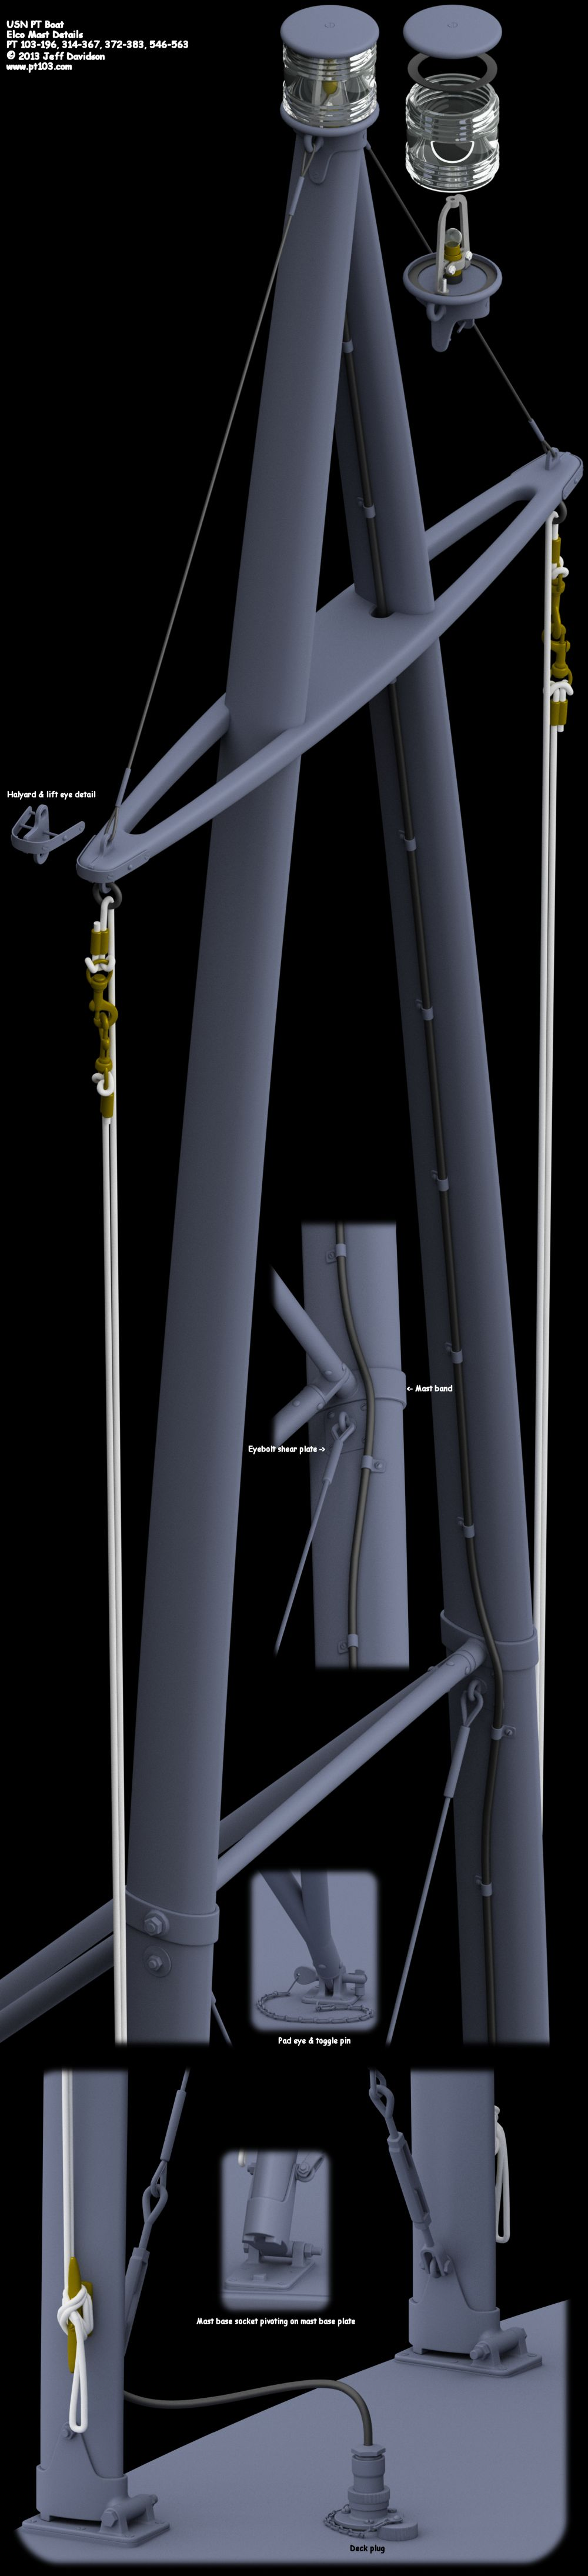 Elco PT Boat 103 Class Mast Perspective